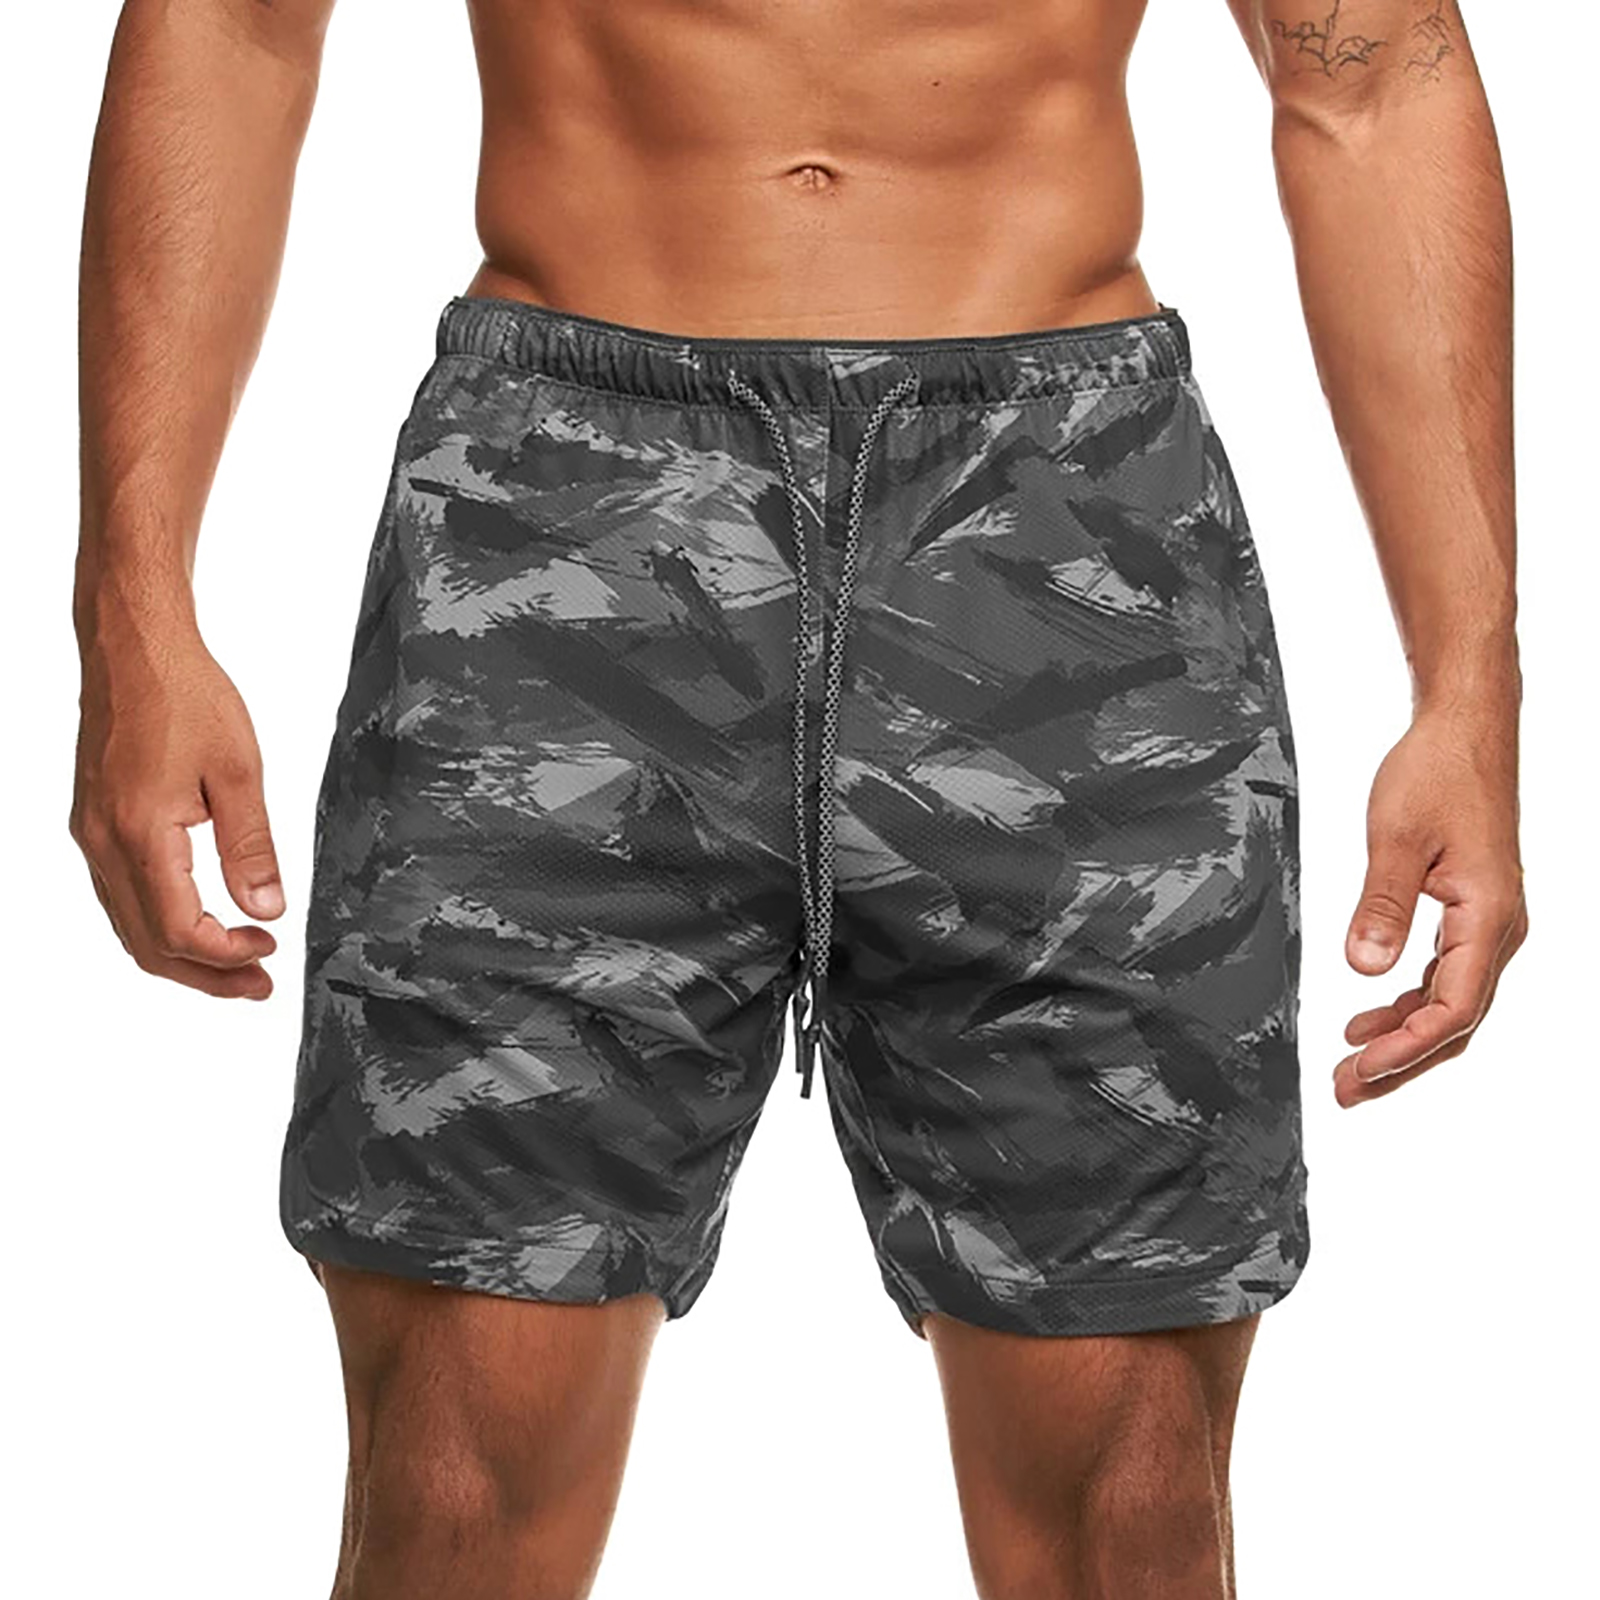 Summer Men Shorts with Towel Loop Camouflage Elastic Waist Workout Running Gym Casual Fashion Short